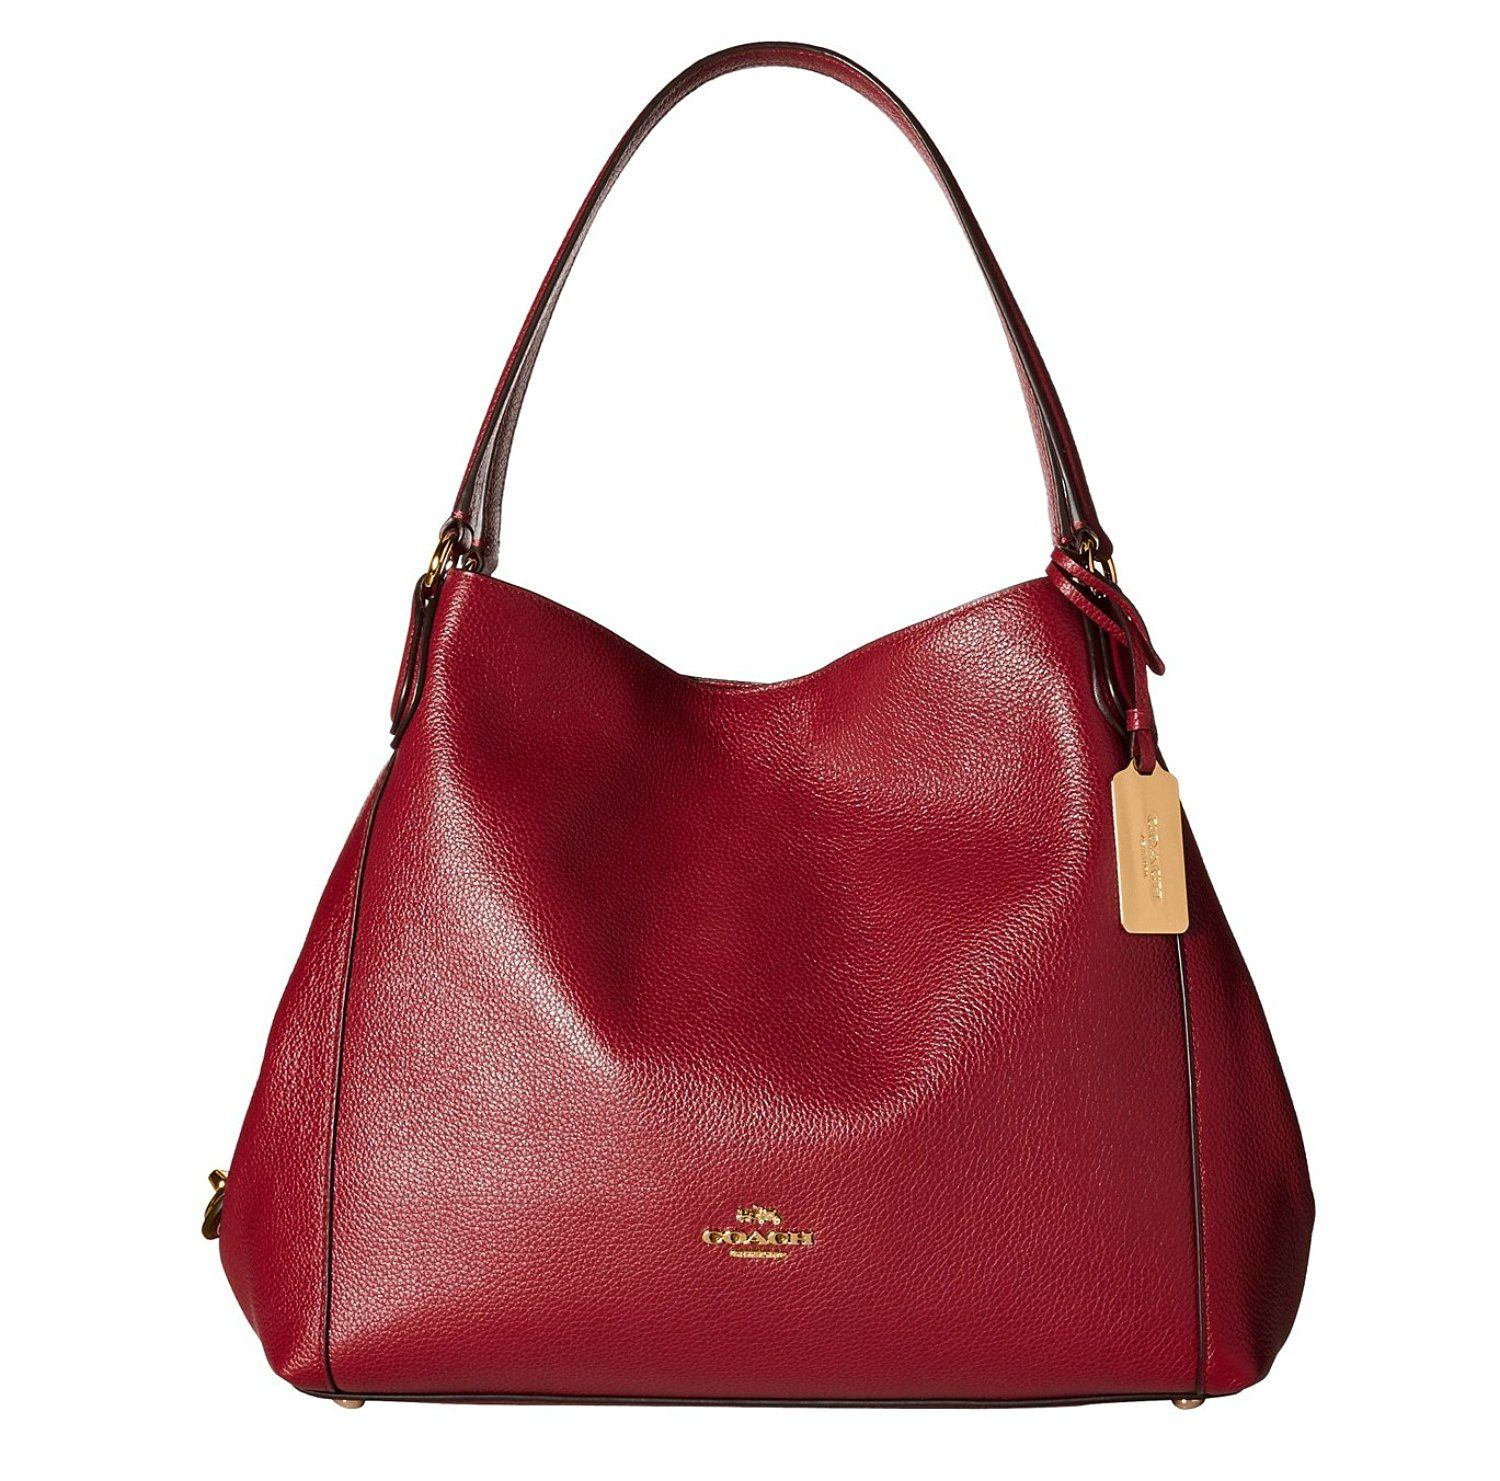 ... COACH EDIE SHOULDER BAG 31 IN REFINED PEBBLE LEATHER (Black Cherry)  Handbags ... 75da0619e2951